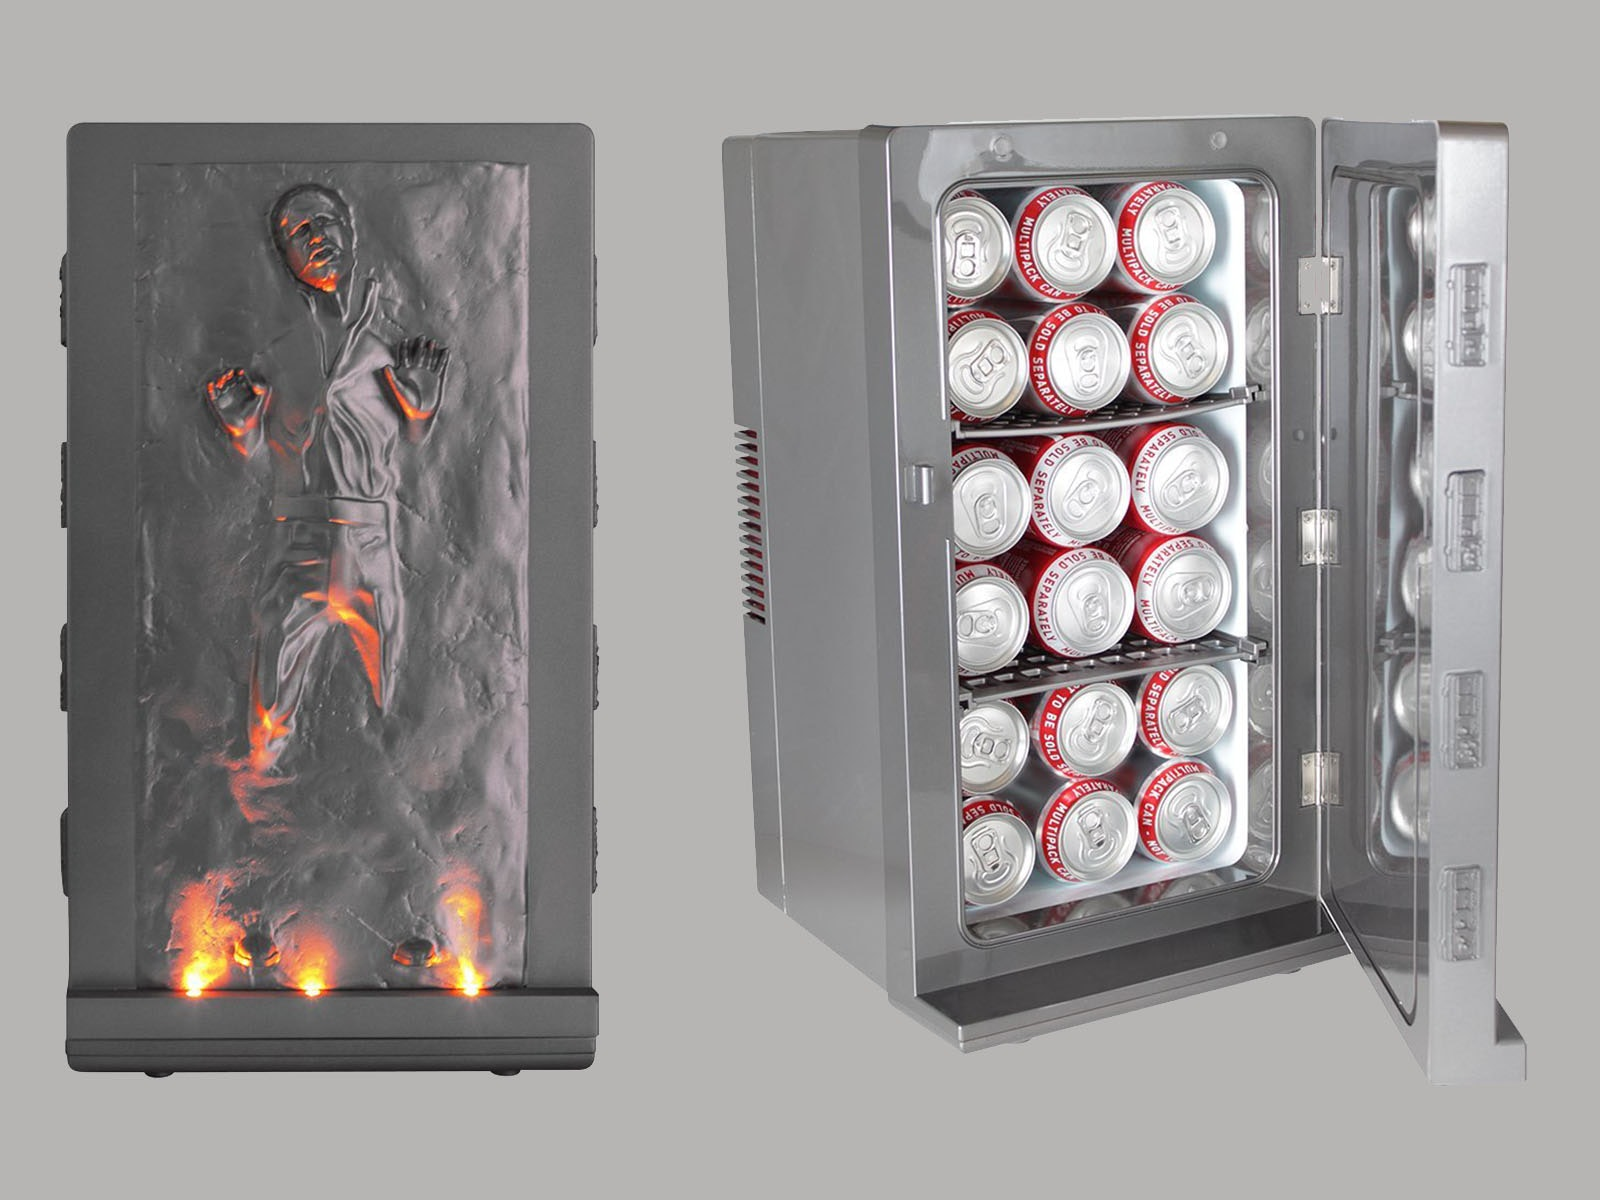 This carbonite-free Han Solo mini fridge for your blue milk